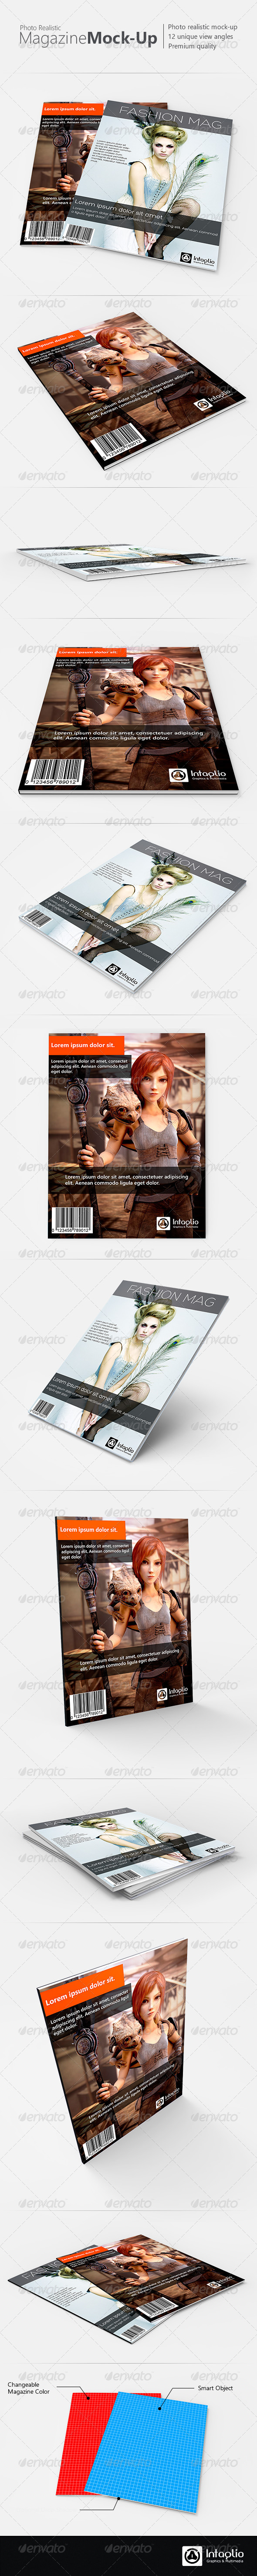 Photo-realistic Magazine Mock-Up - Magazines Print